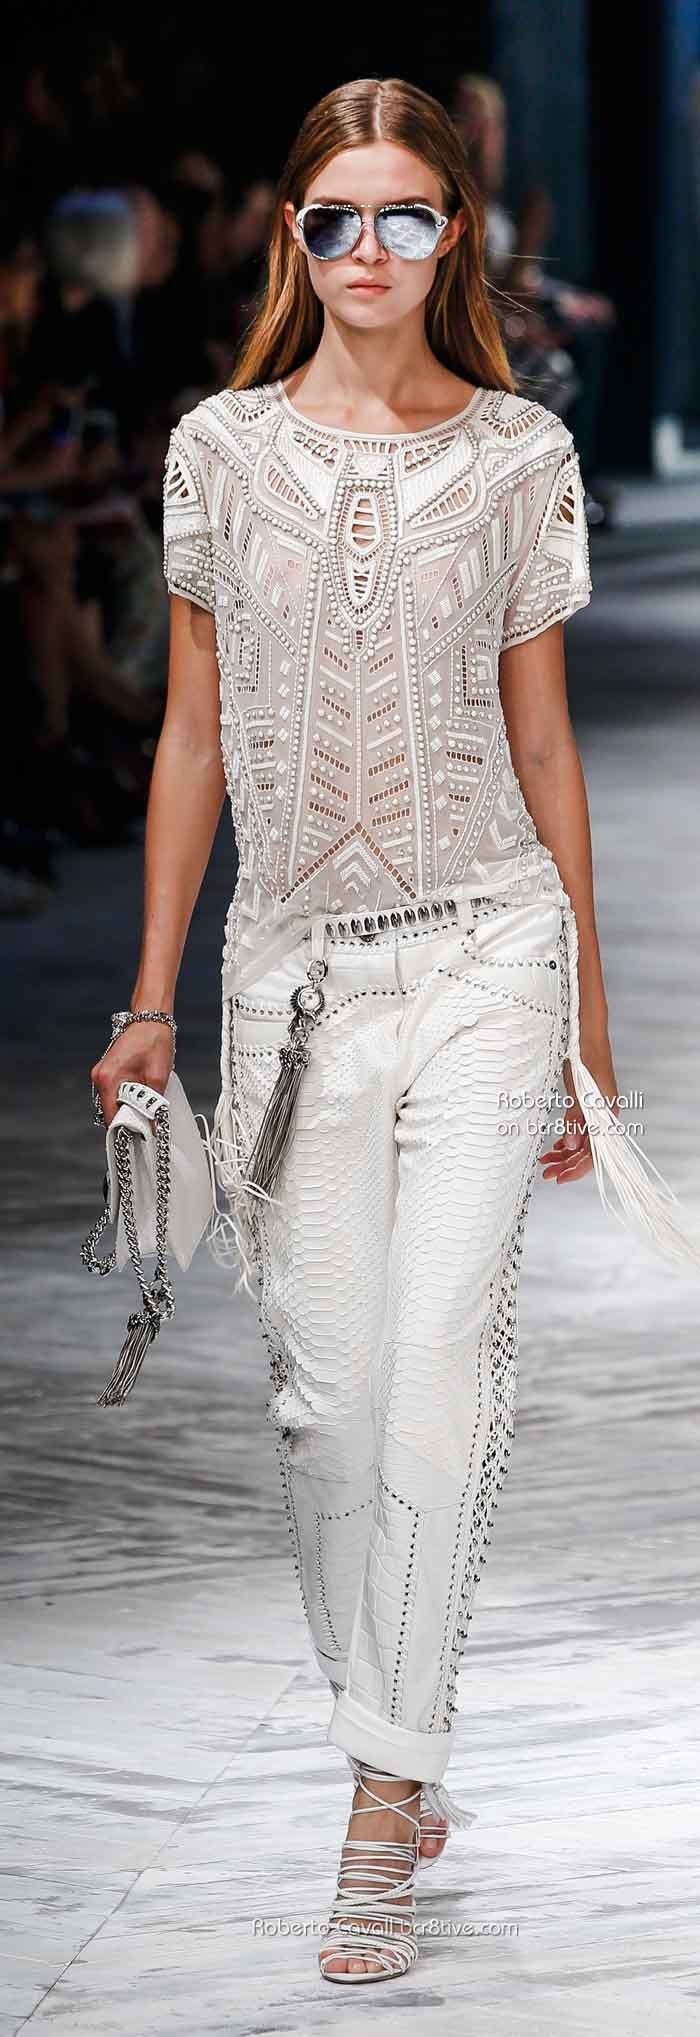 Total white look perfect for summer - Roberto Cavalli Spring 2014